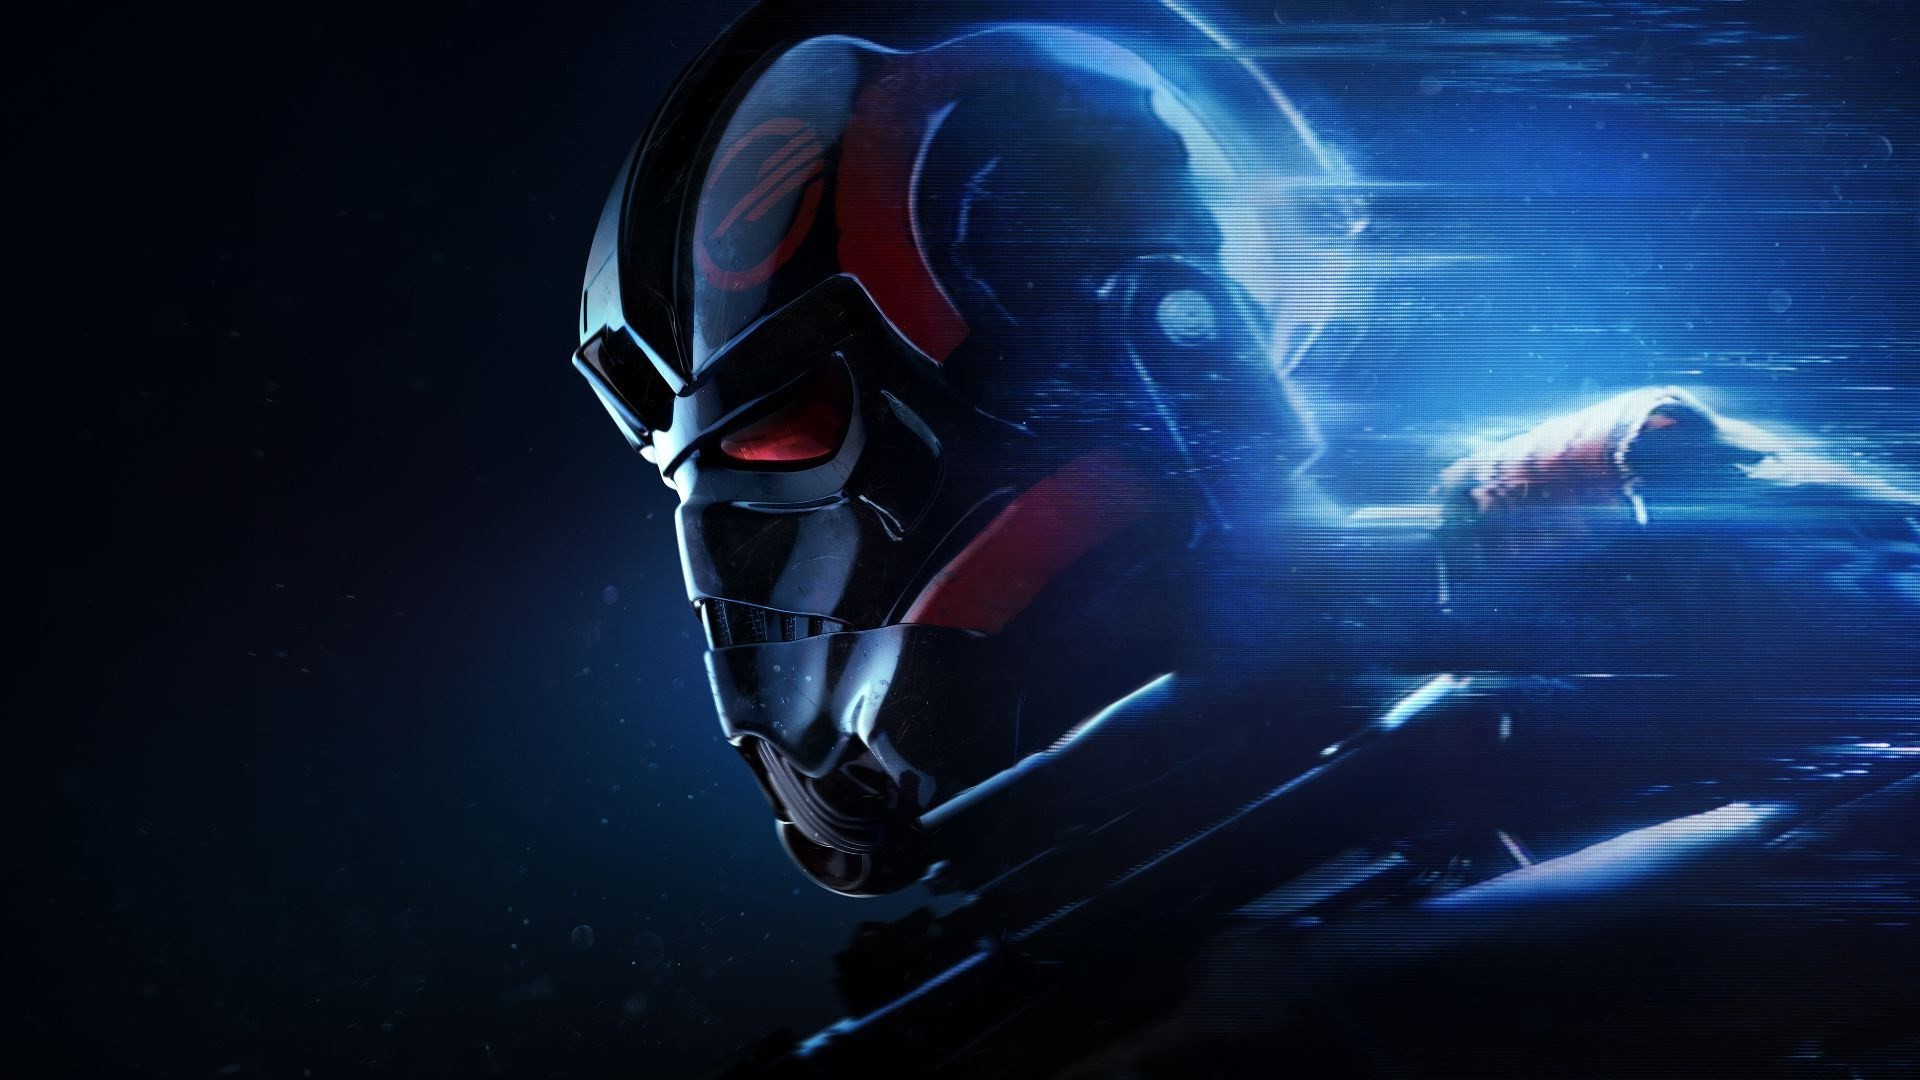 Star Wars Battlefront 2 Hd Wallpaper Posted By John Mercado